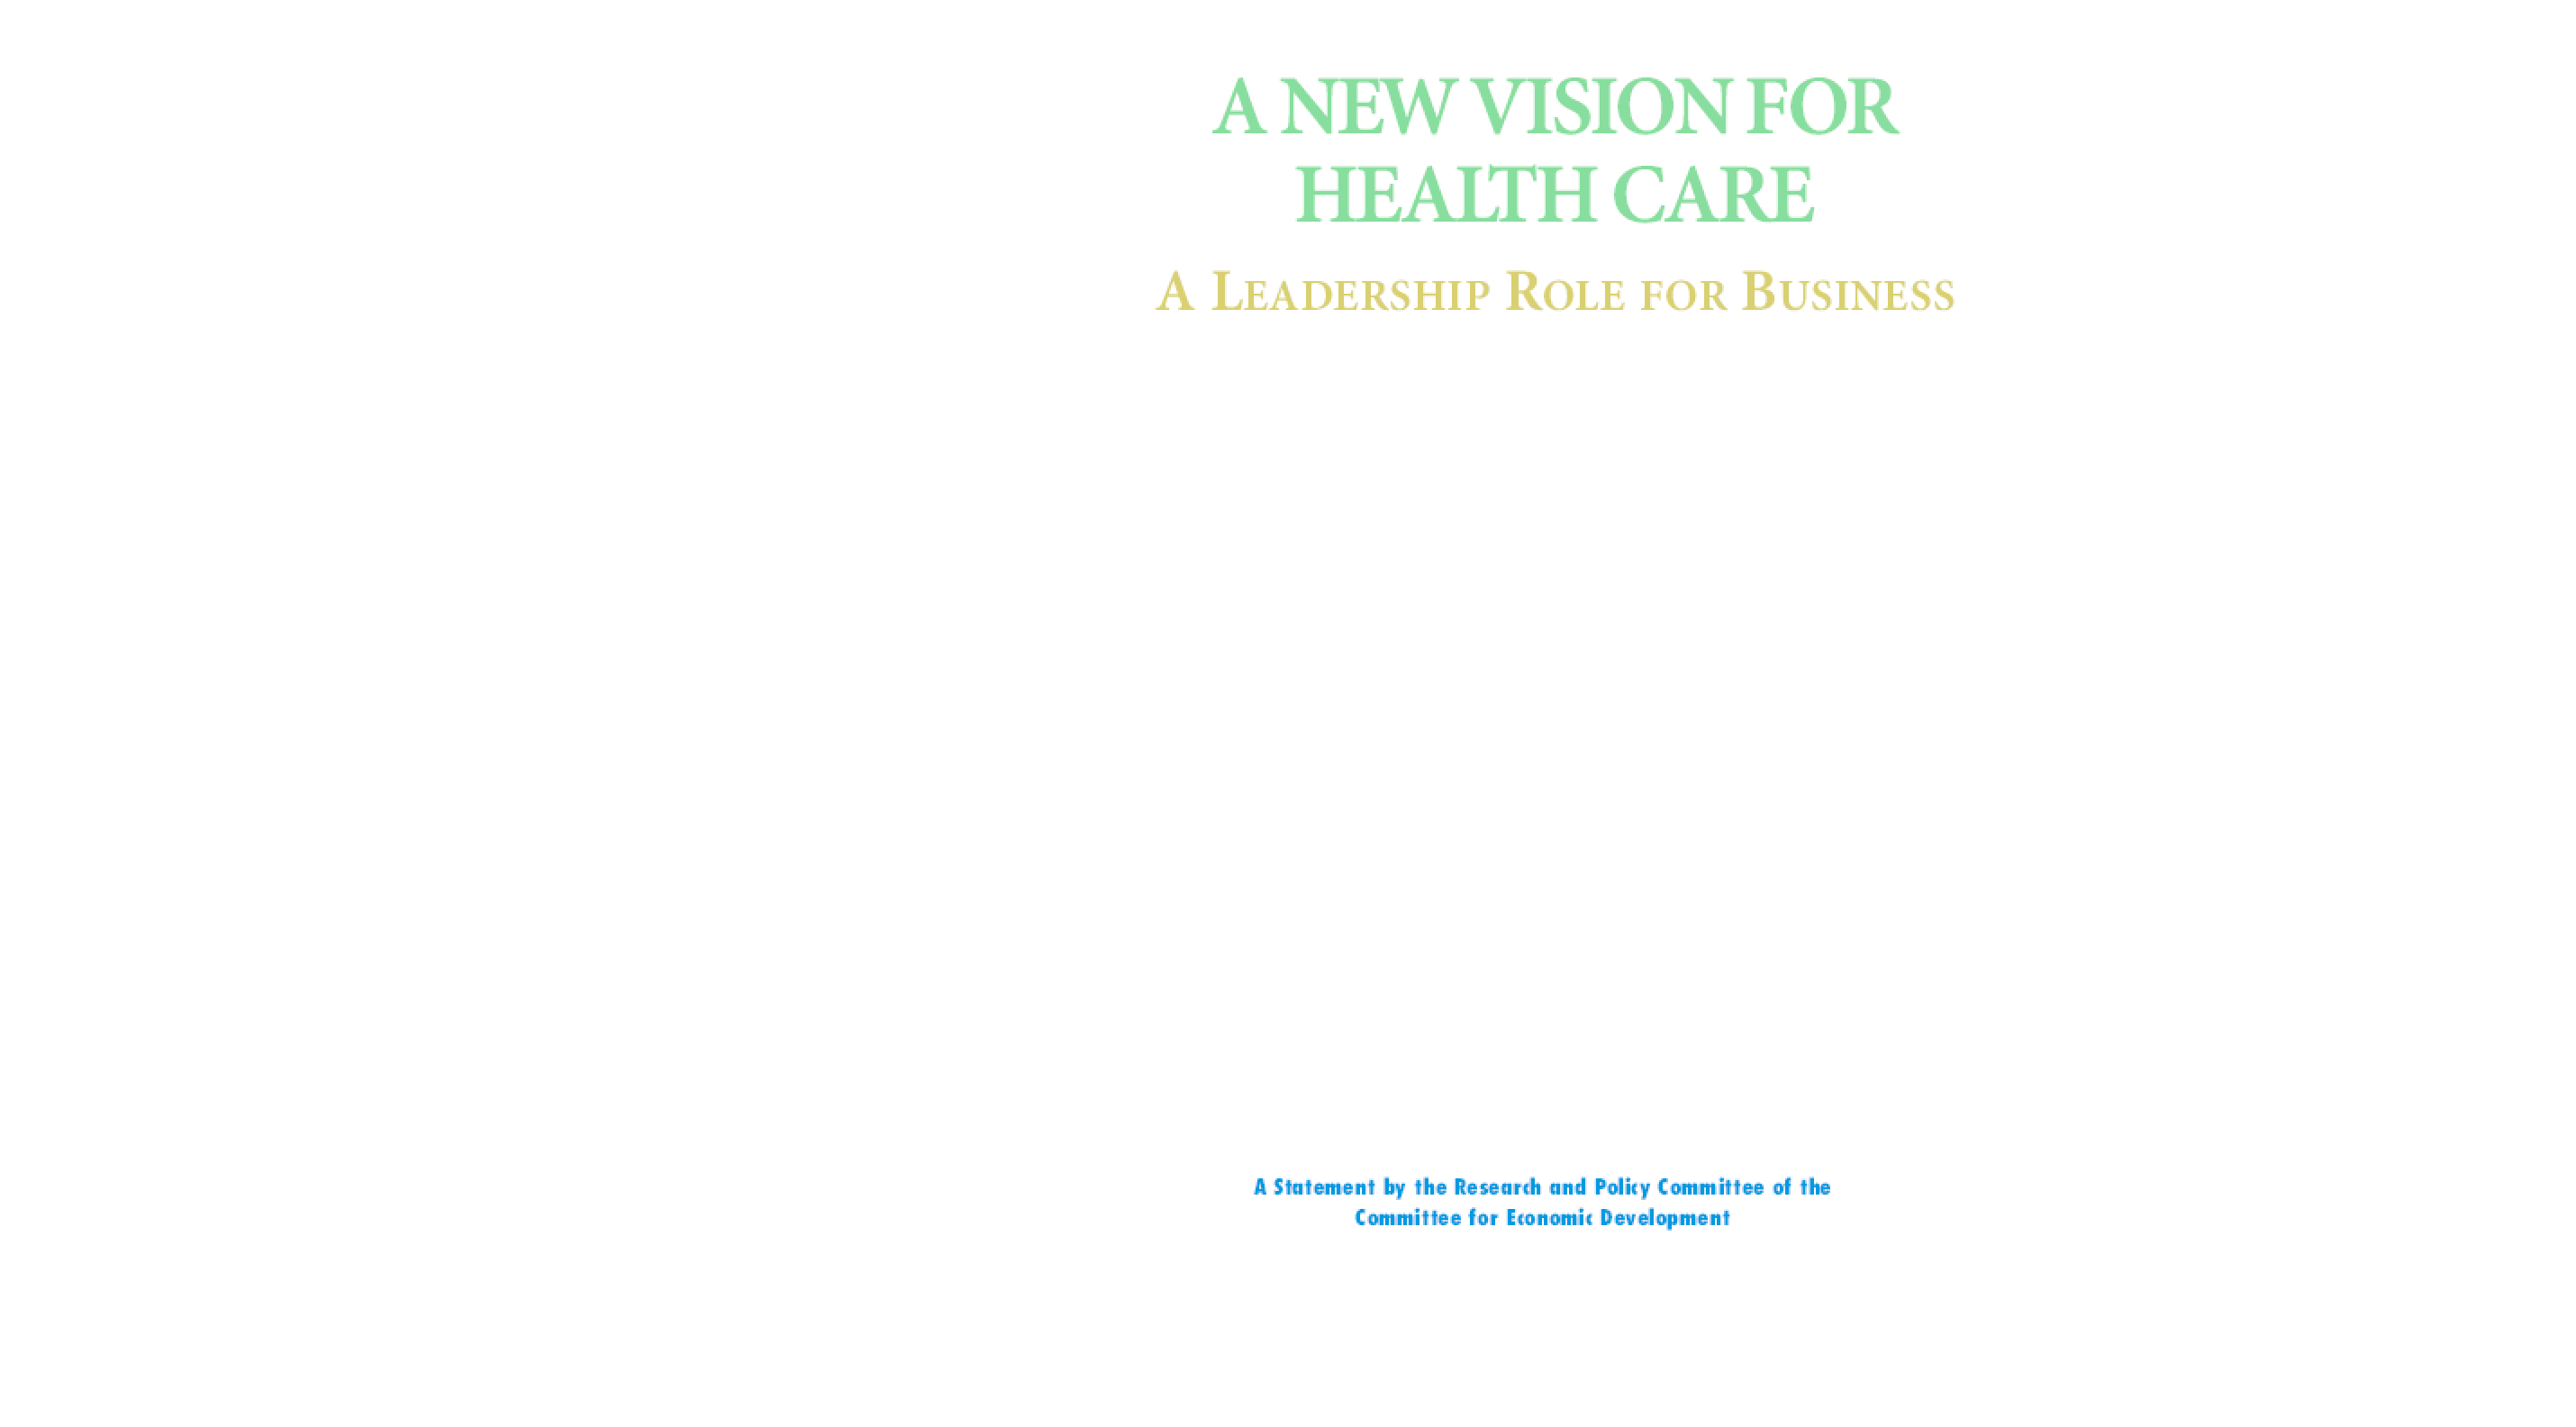 A New Vision for Health Care: A Leadership Role for Business